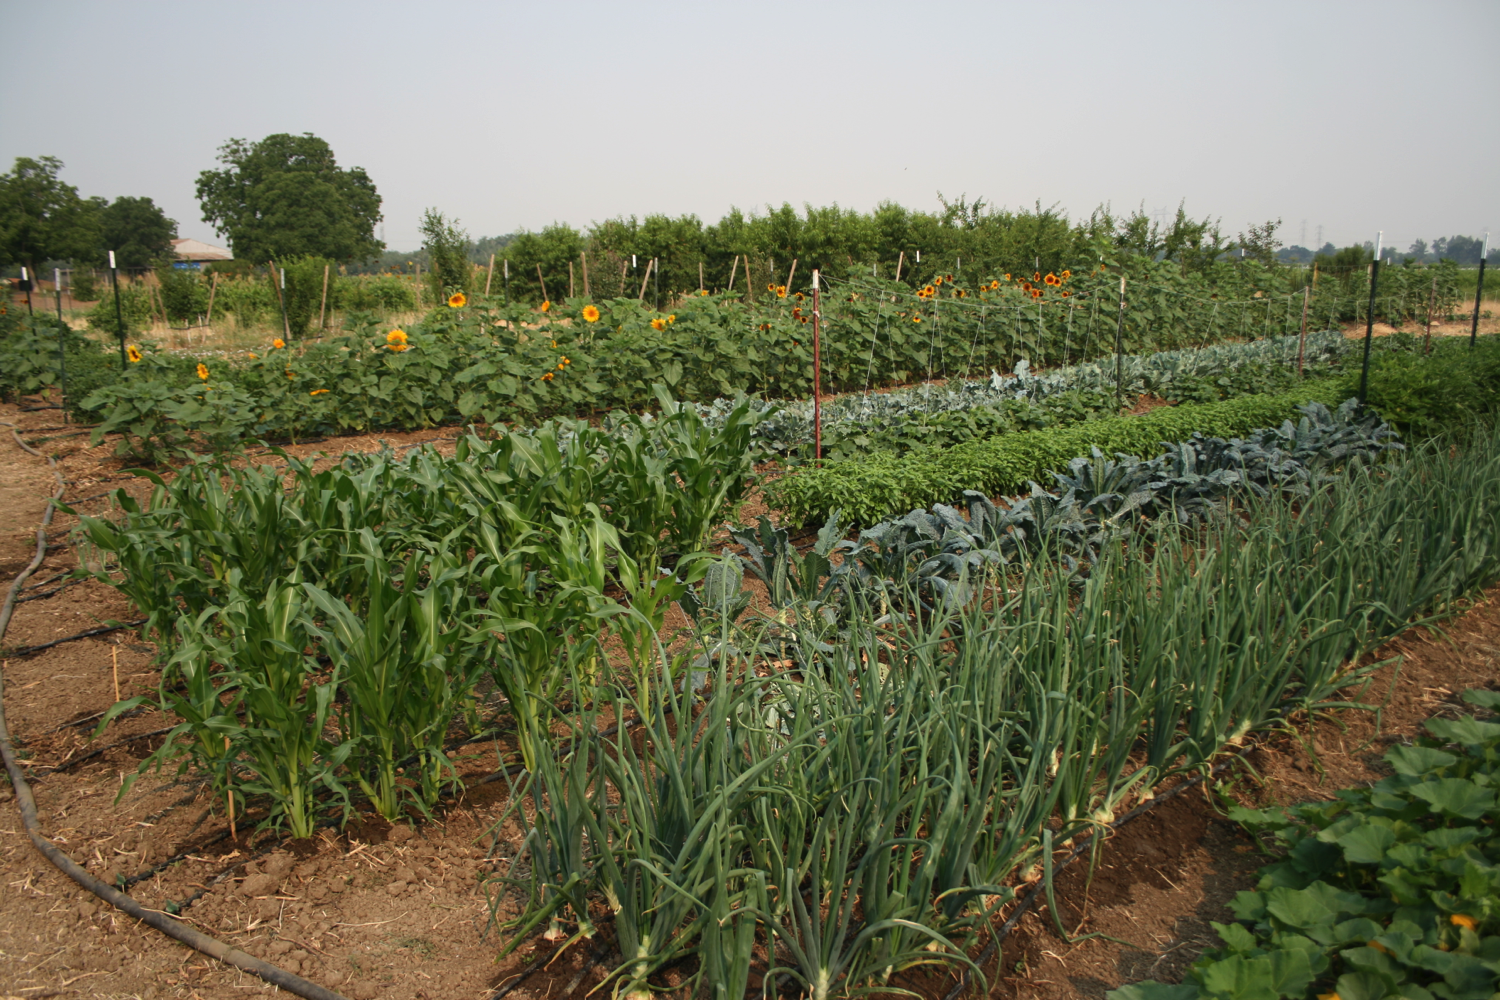 The yields of organic farms, particularly those with multiple crops, compare well to those of chemically intensive agriculture. Photo by C. Kremen